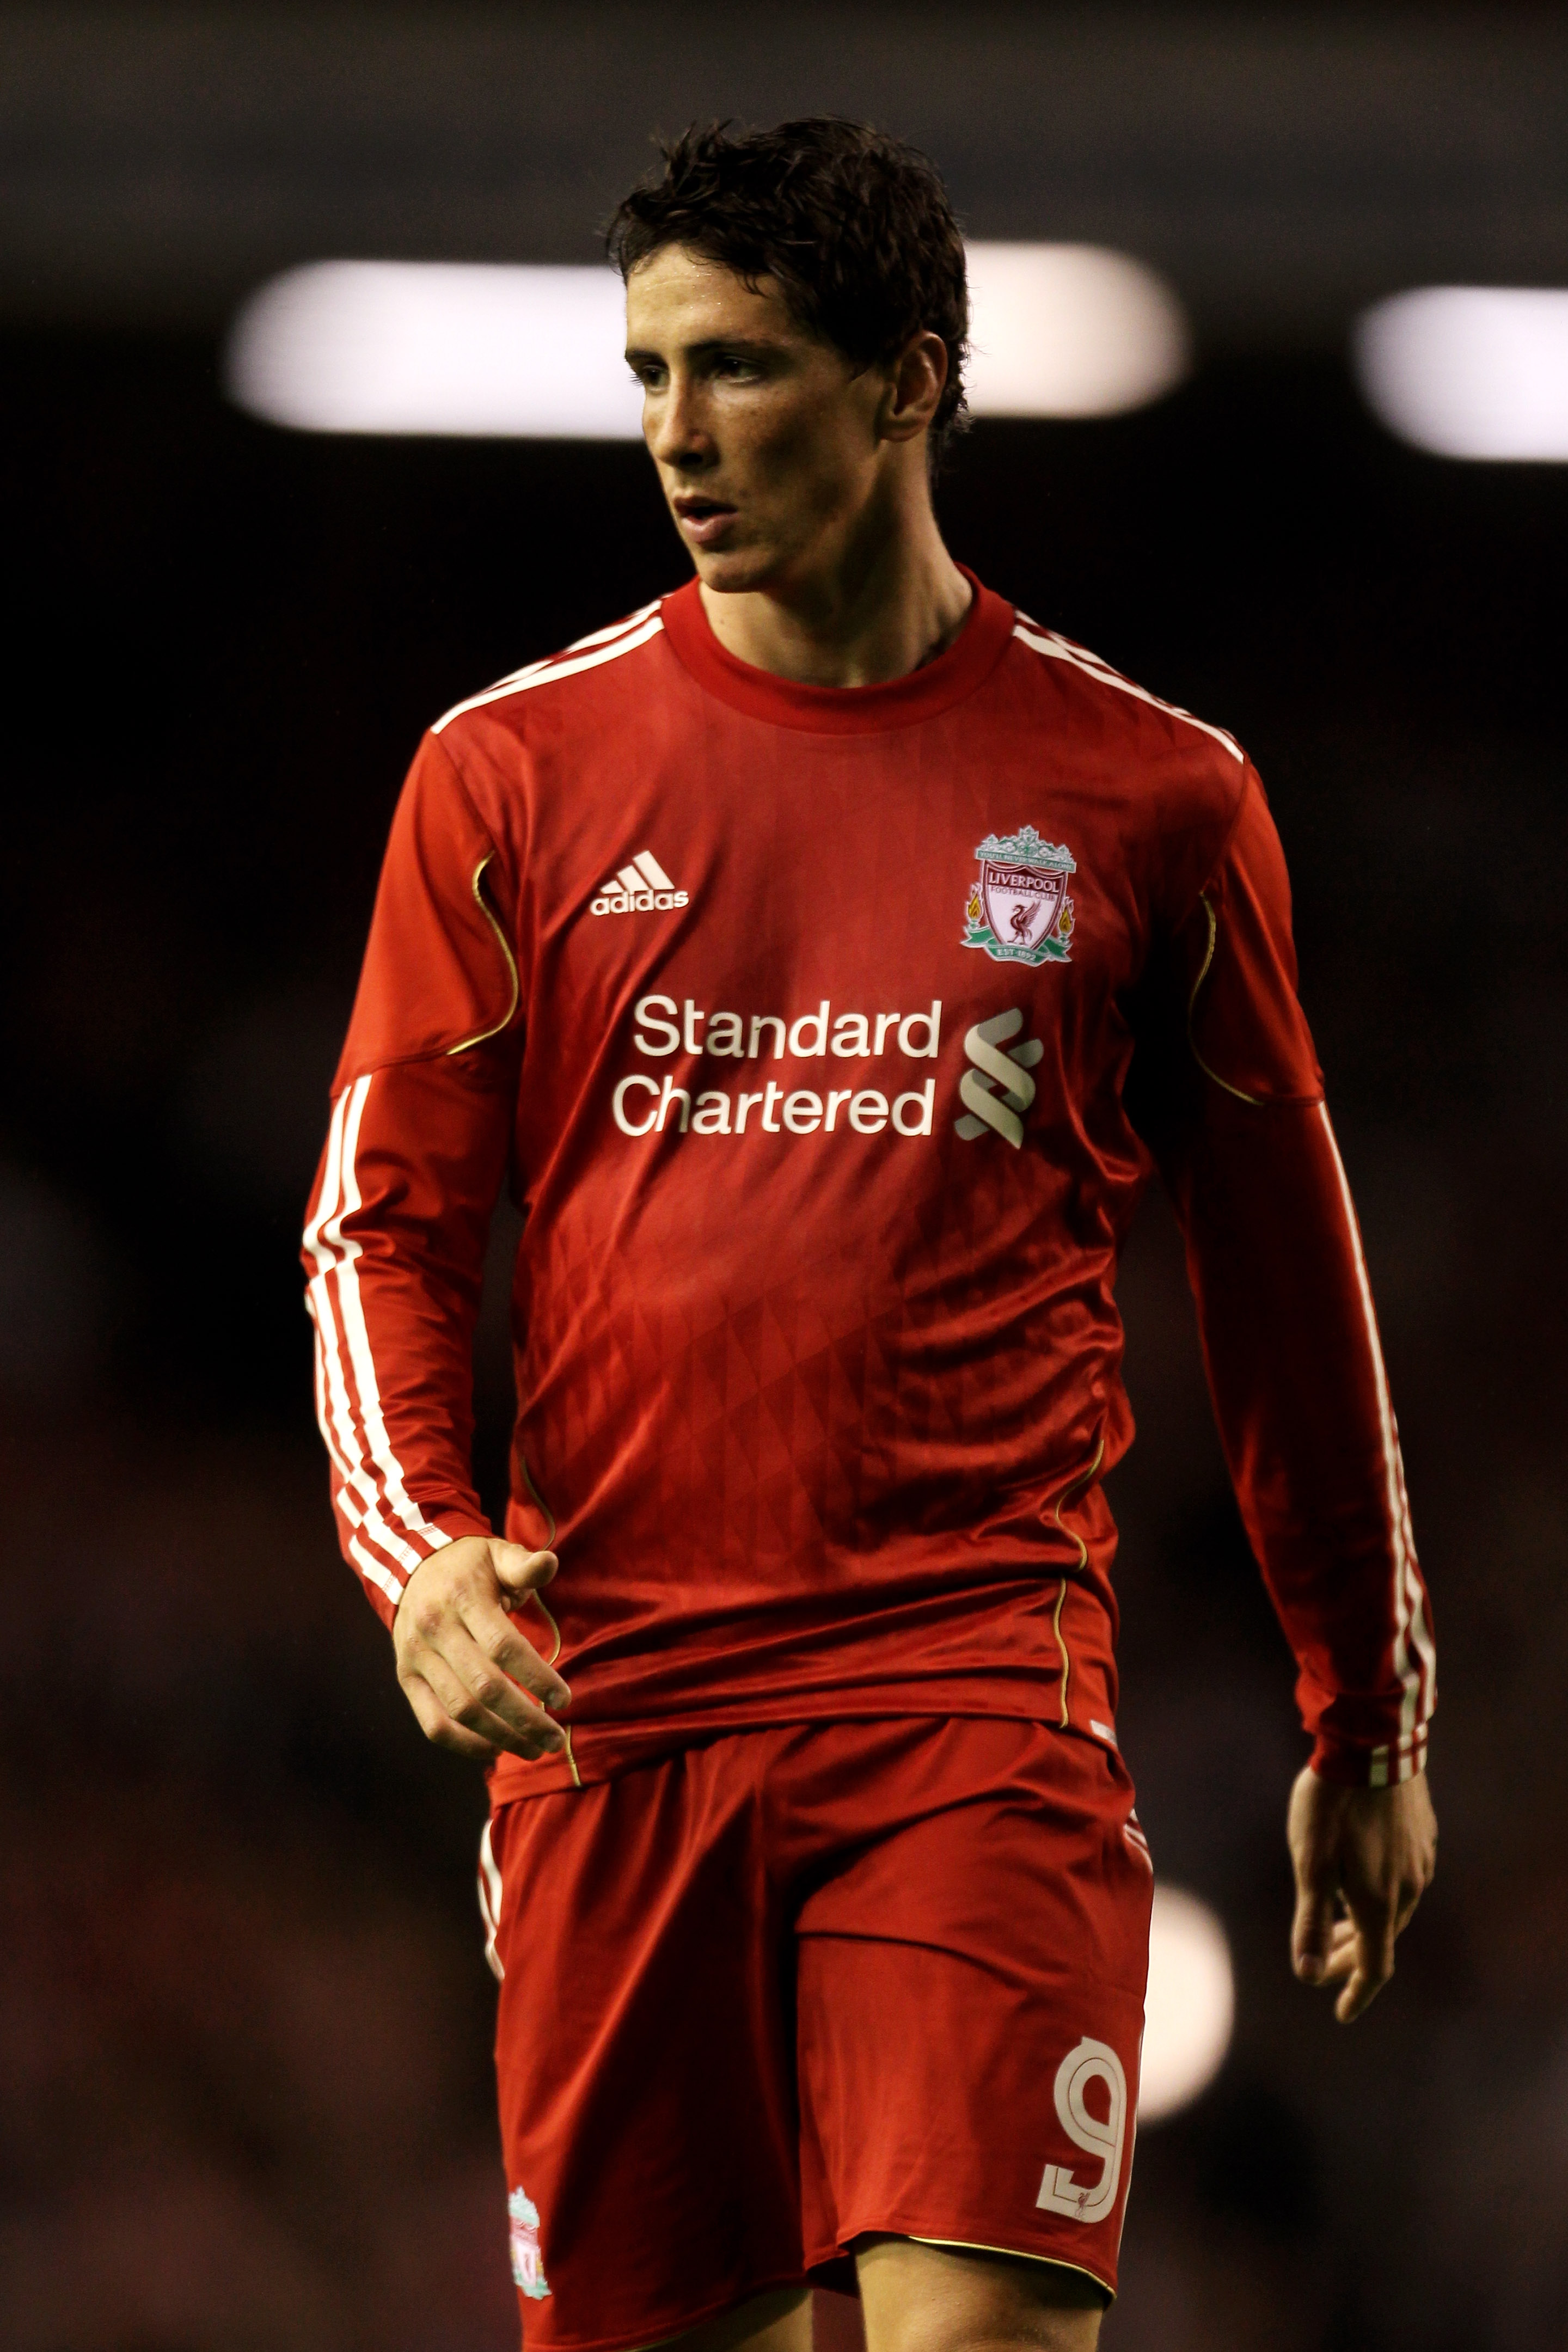 LIVERPOOL, ENGLAND - AUGUST 19:  Fernando Torres of Liverpool in action during the UEFA Europa League play-off first leg match beteween Liverpool and Trabzonspor at Anfield on August 19, 2010 in Liverpool, England.  (Photo by Alex Livesey/Getty Images)